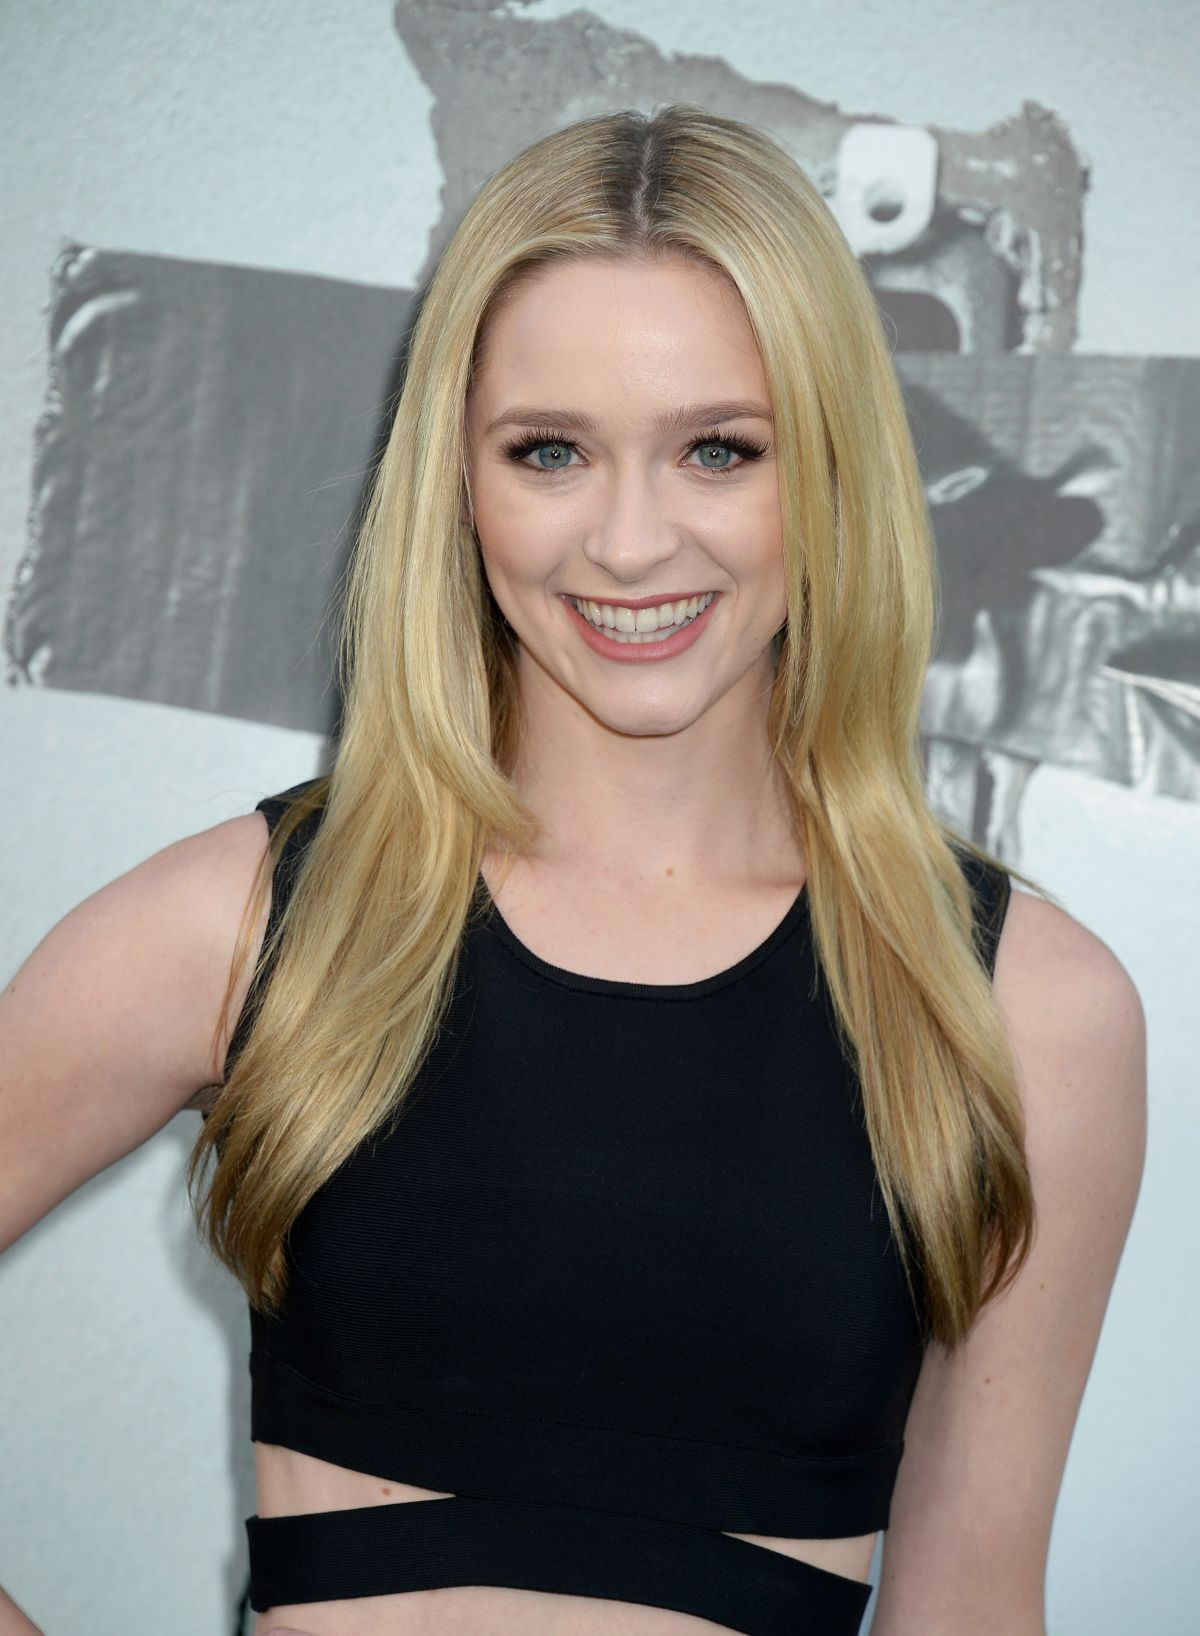 GREER GRAMMER at Lights Out Premiere in Los Angeles 07/19 ...